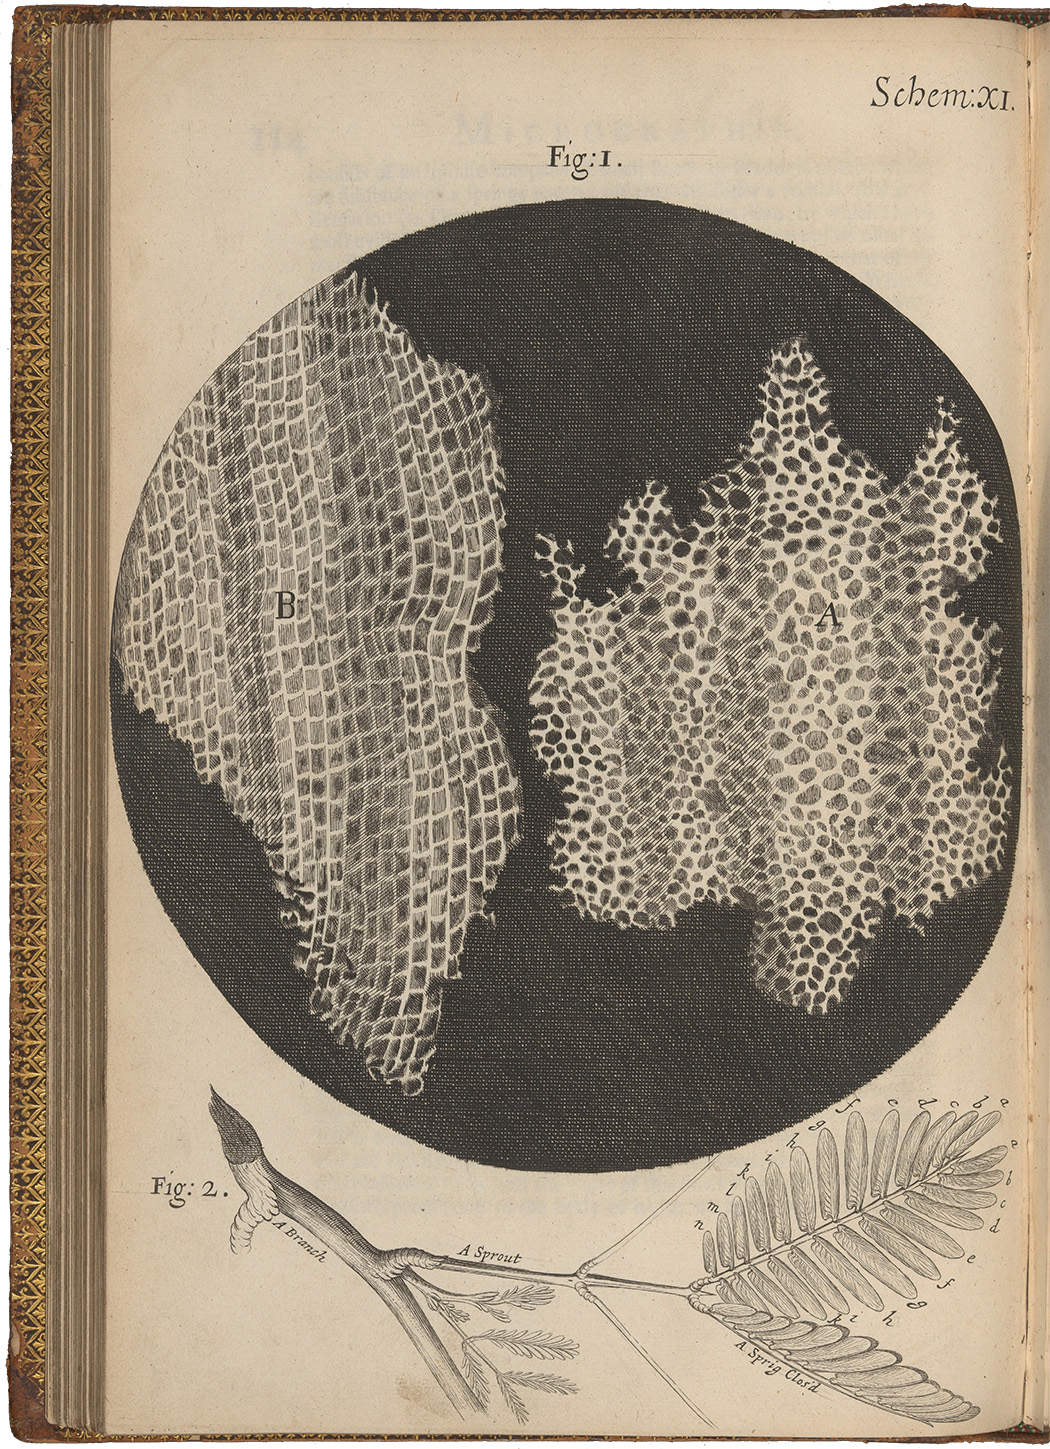 Engraving, magnified view of two different sections of the pores of cork, and a branch; Schem. 11. From 'Micrographia: or some physiological descriptions of minute bodies made by magnifying glasses with observations and Inquiries thereupon' by Robert Hooke, Fellow of the Royal Society, 1665.